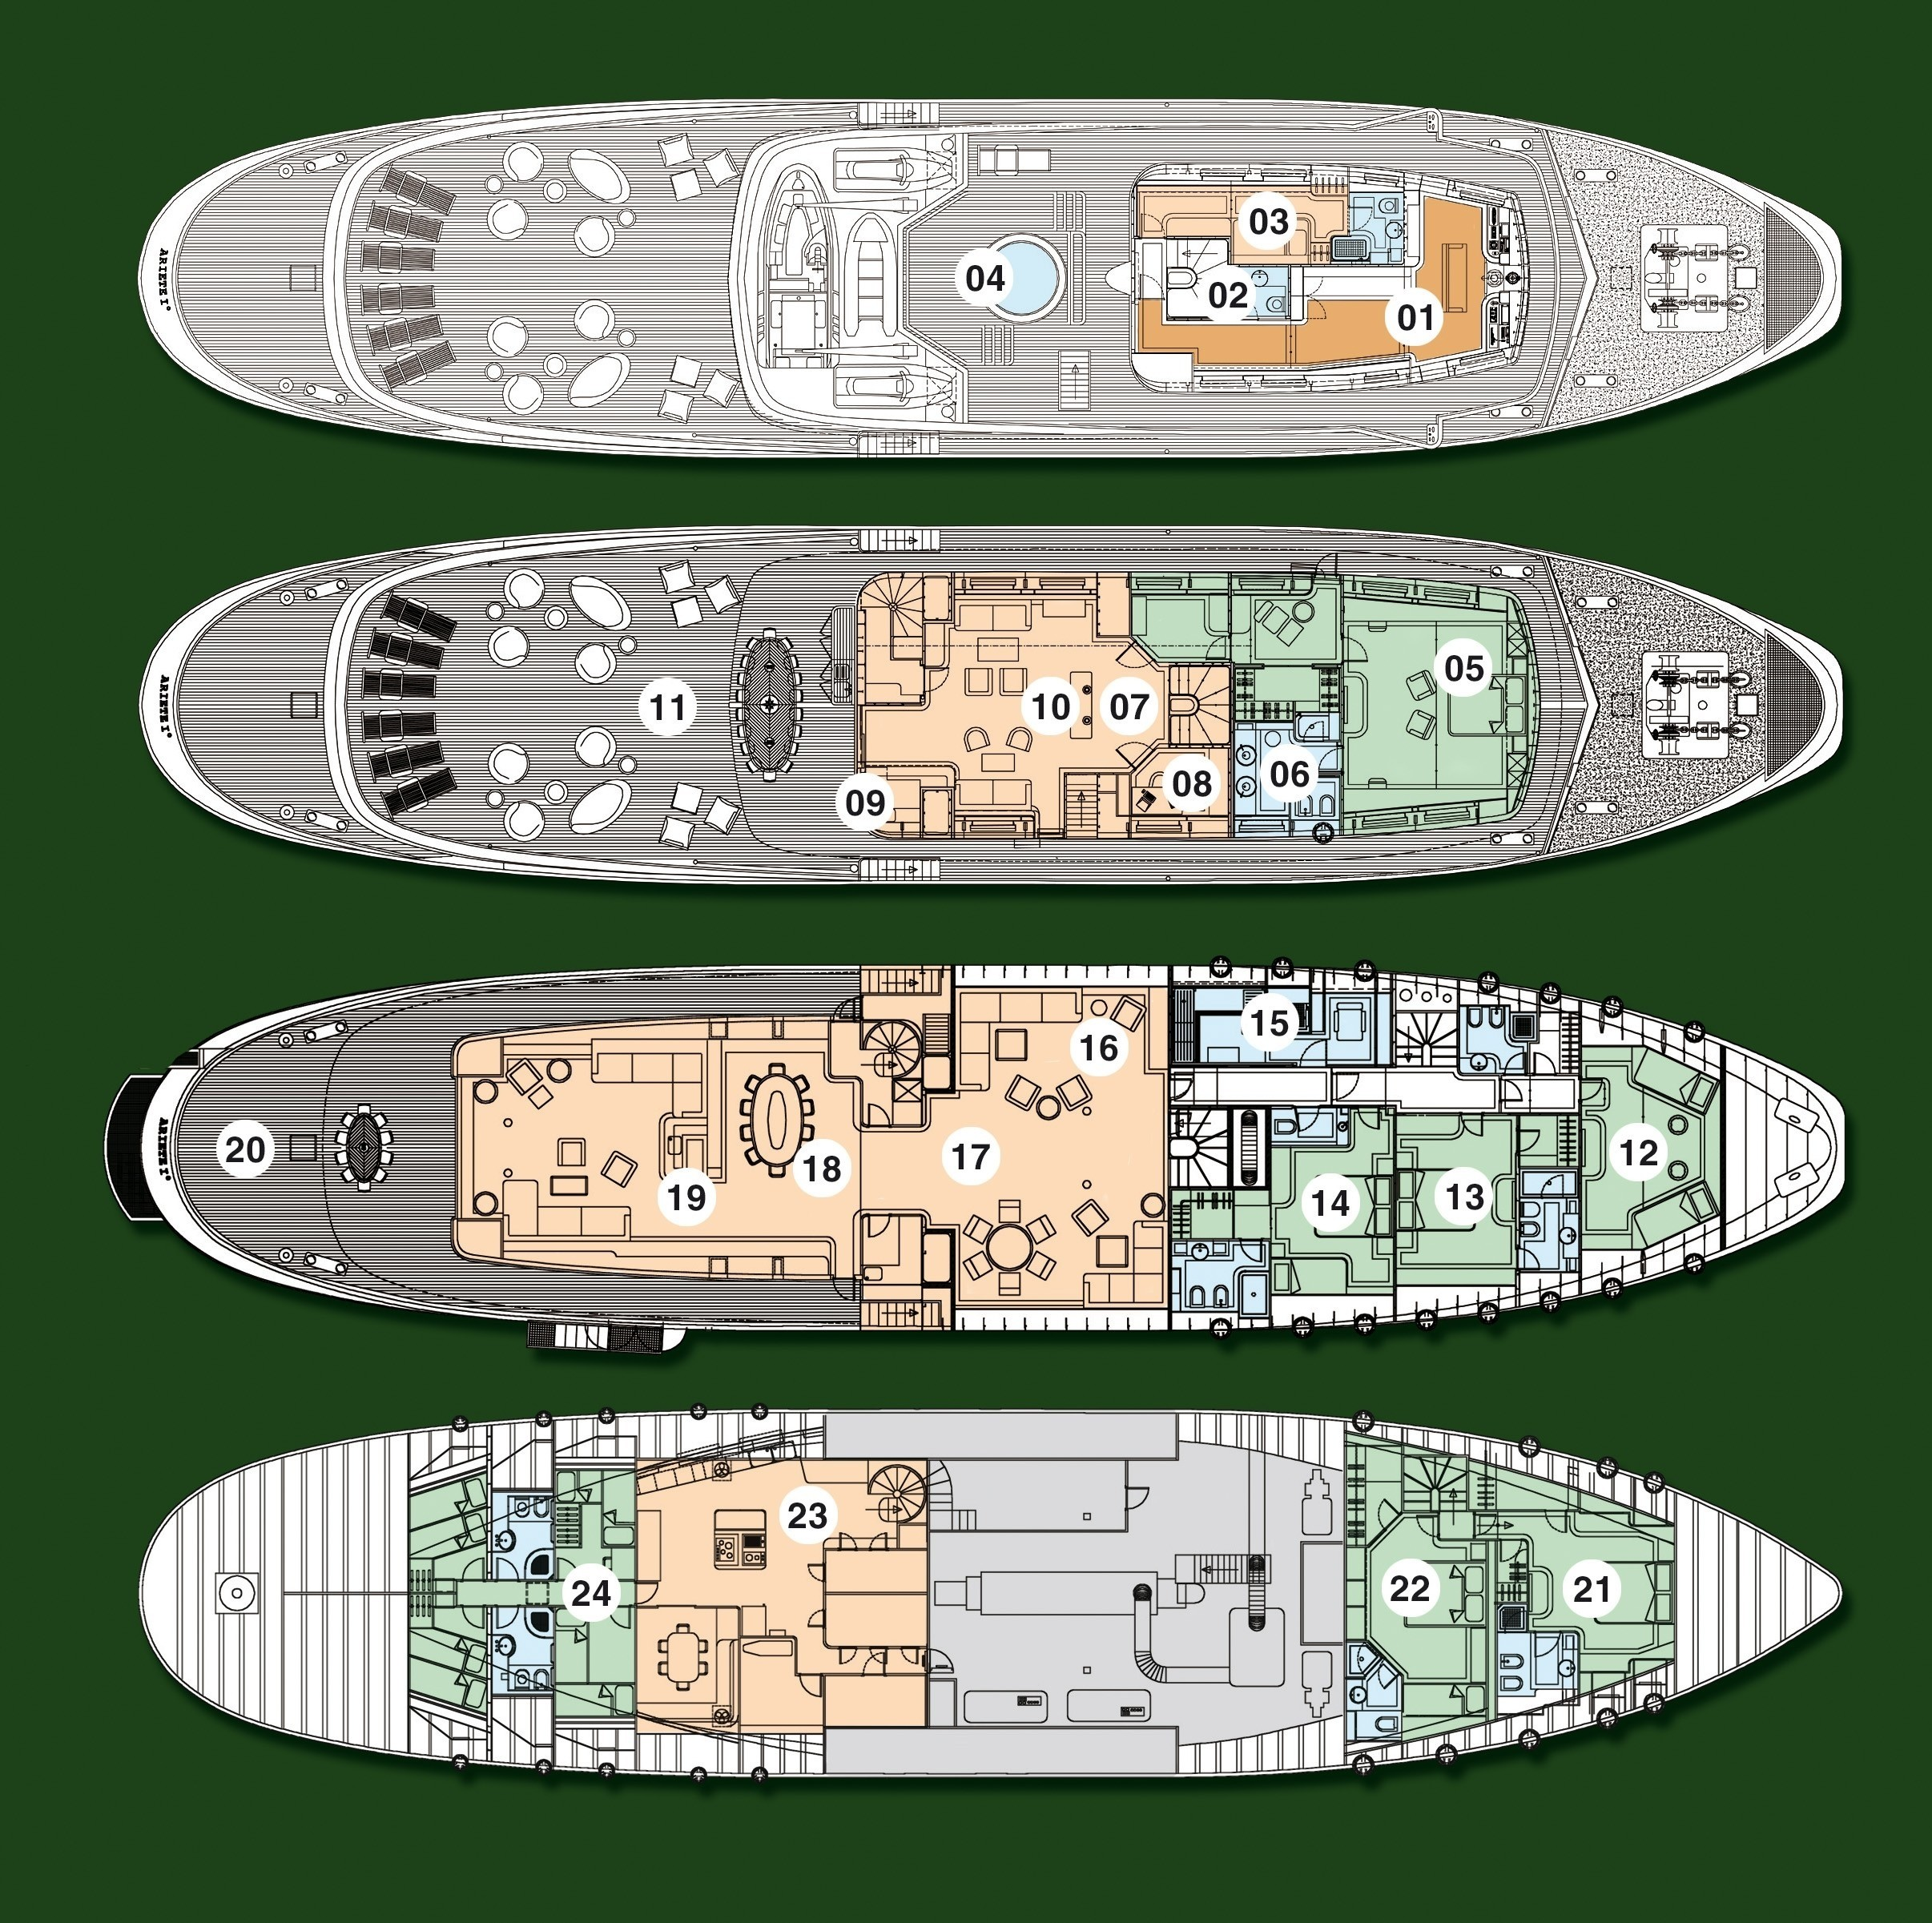 Deck Plans / Map Aboard Yacht ARIETE PRIMO